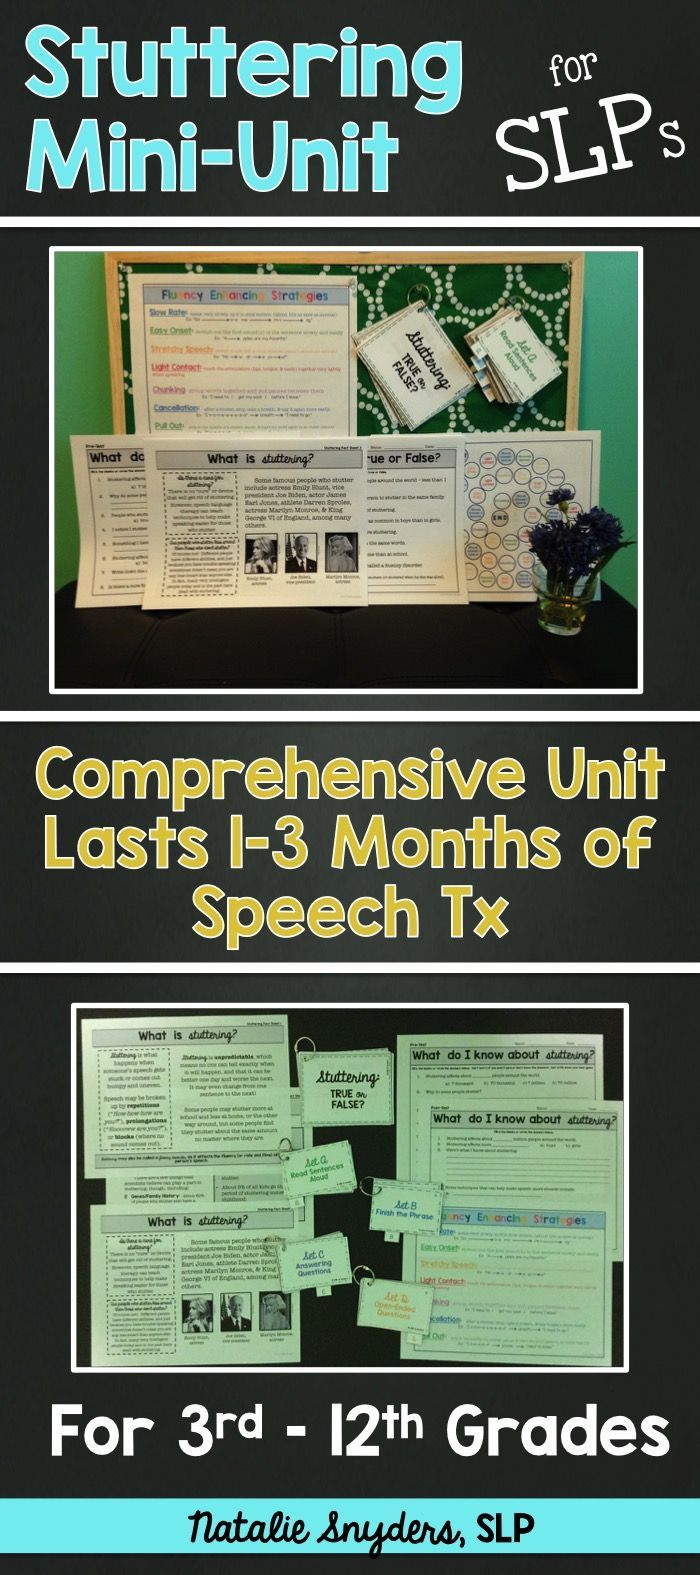 Comprehensive stuttering mini-unit appropriate for upper elementary, middle school, and high school!  HUGE time saver!